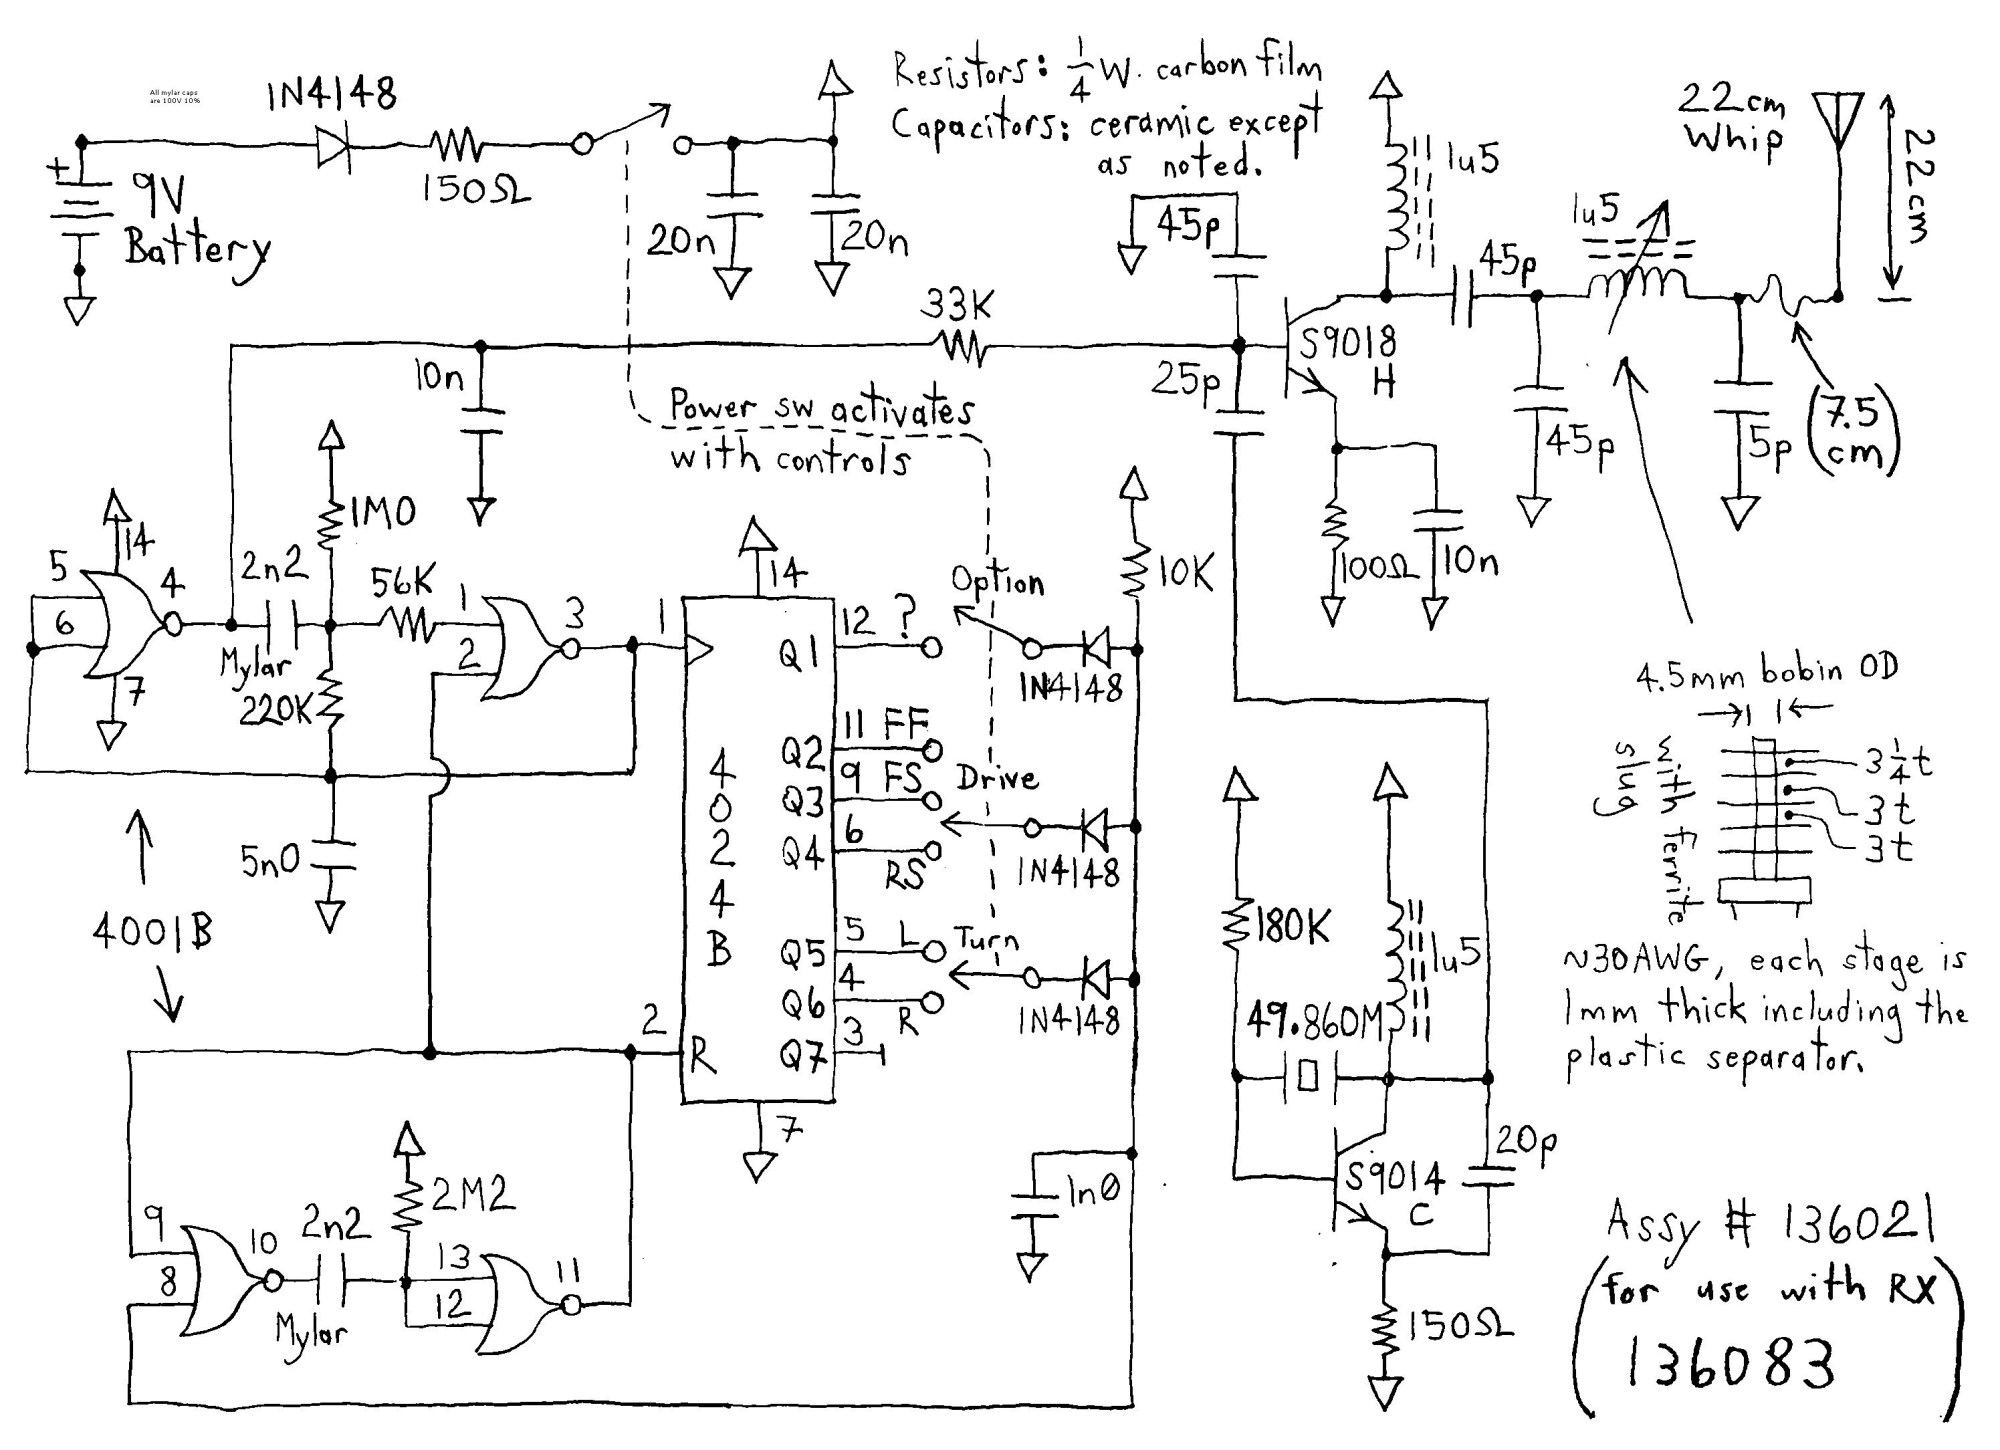 hight resolution of gibson sg wiring schematic wiring diagram for sg guitar best wiring diagram gibson sg archives